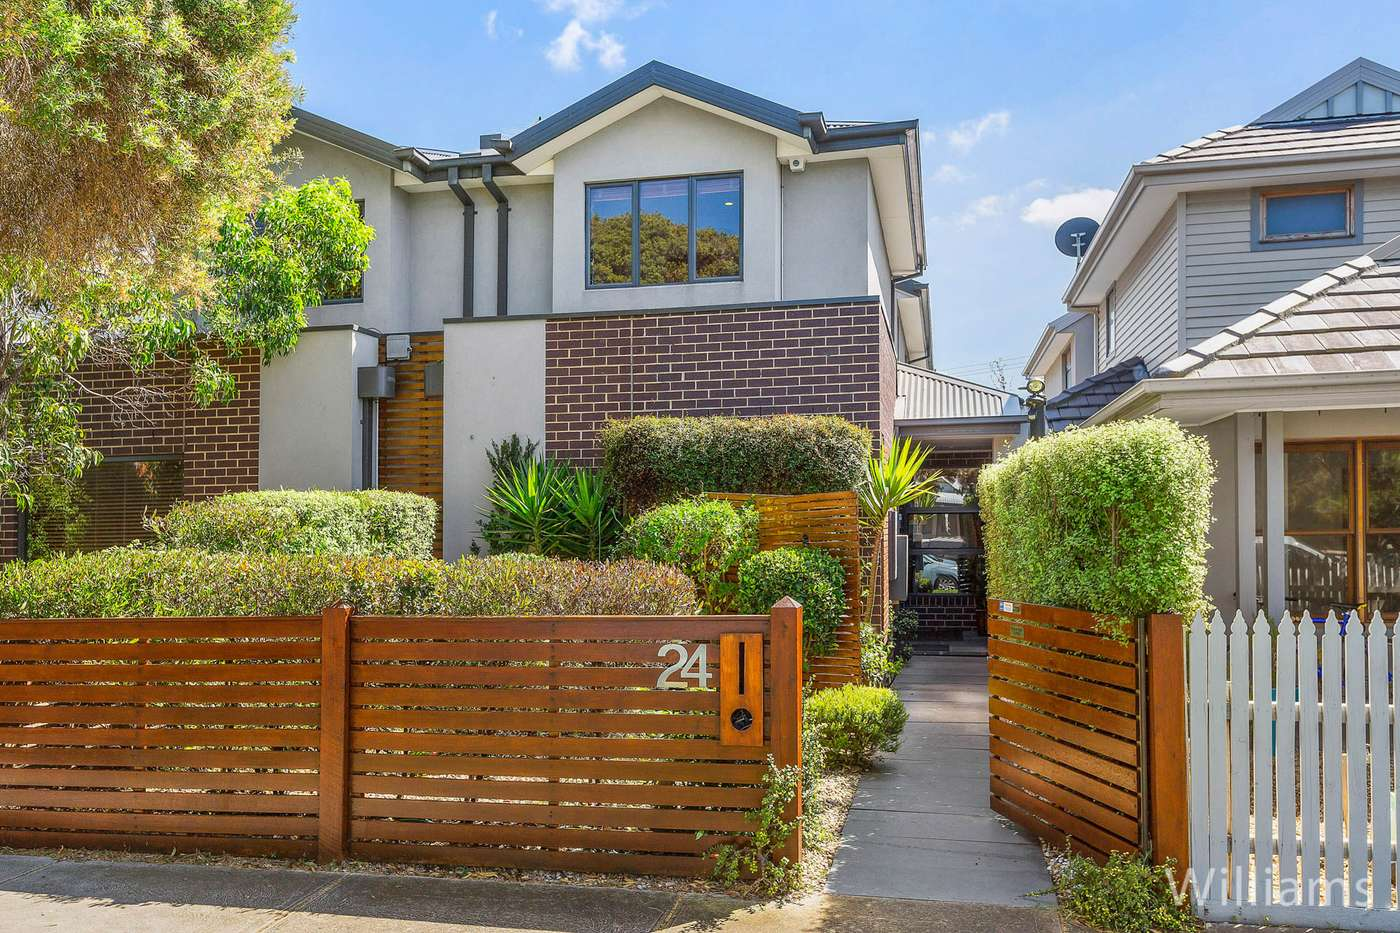 Main view of Homely townhouse listing, 24 Junction Street, Newport, VIC 3015